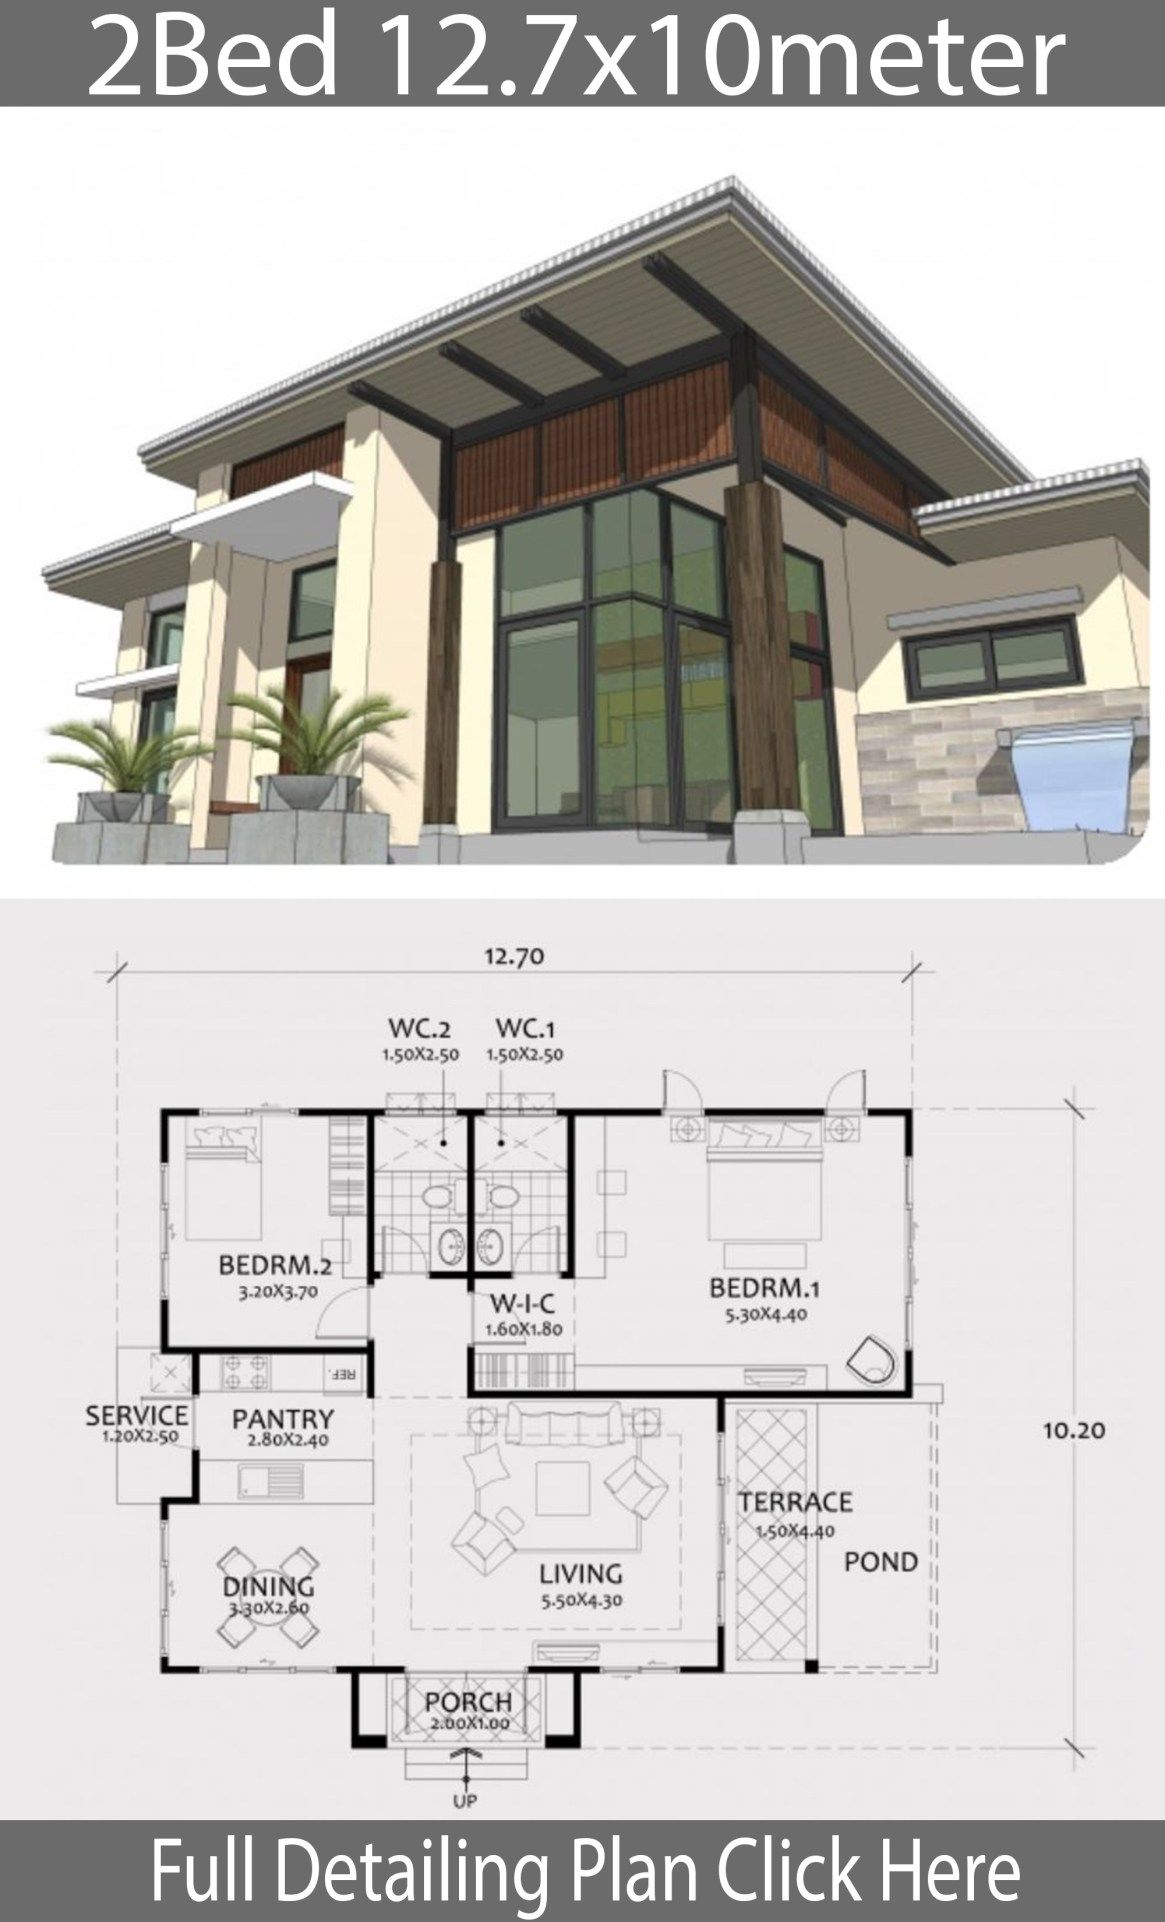 Home Design Plan 12 7x10m With 2 Bedrooms Building Plans House Home Design Plan House Architecture Design